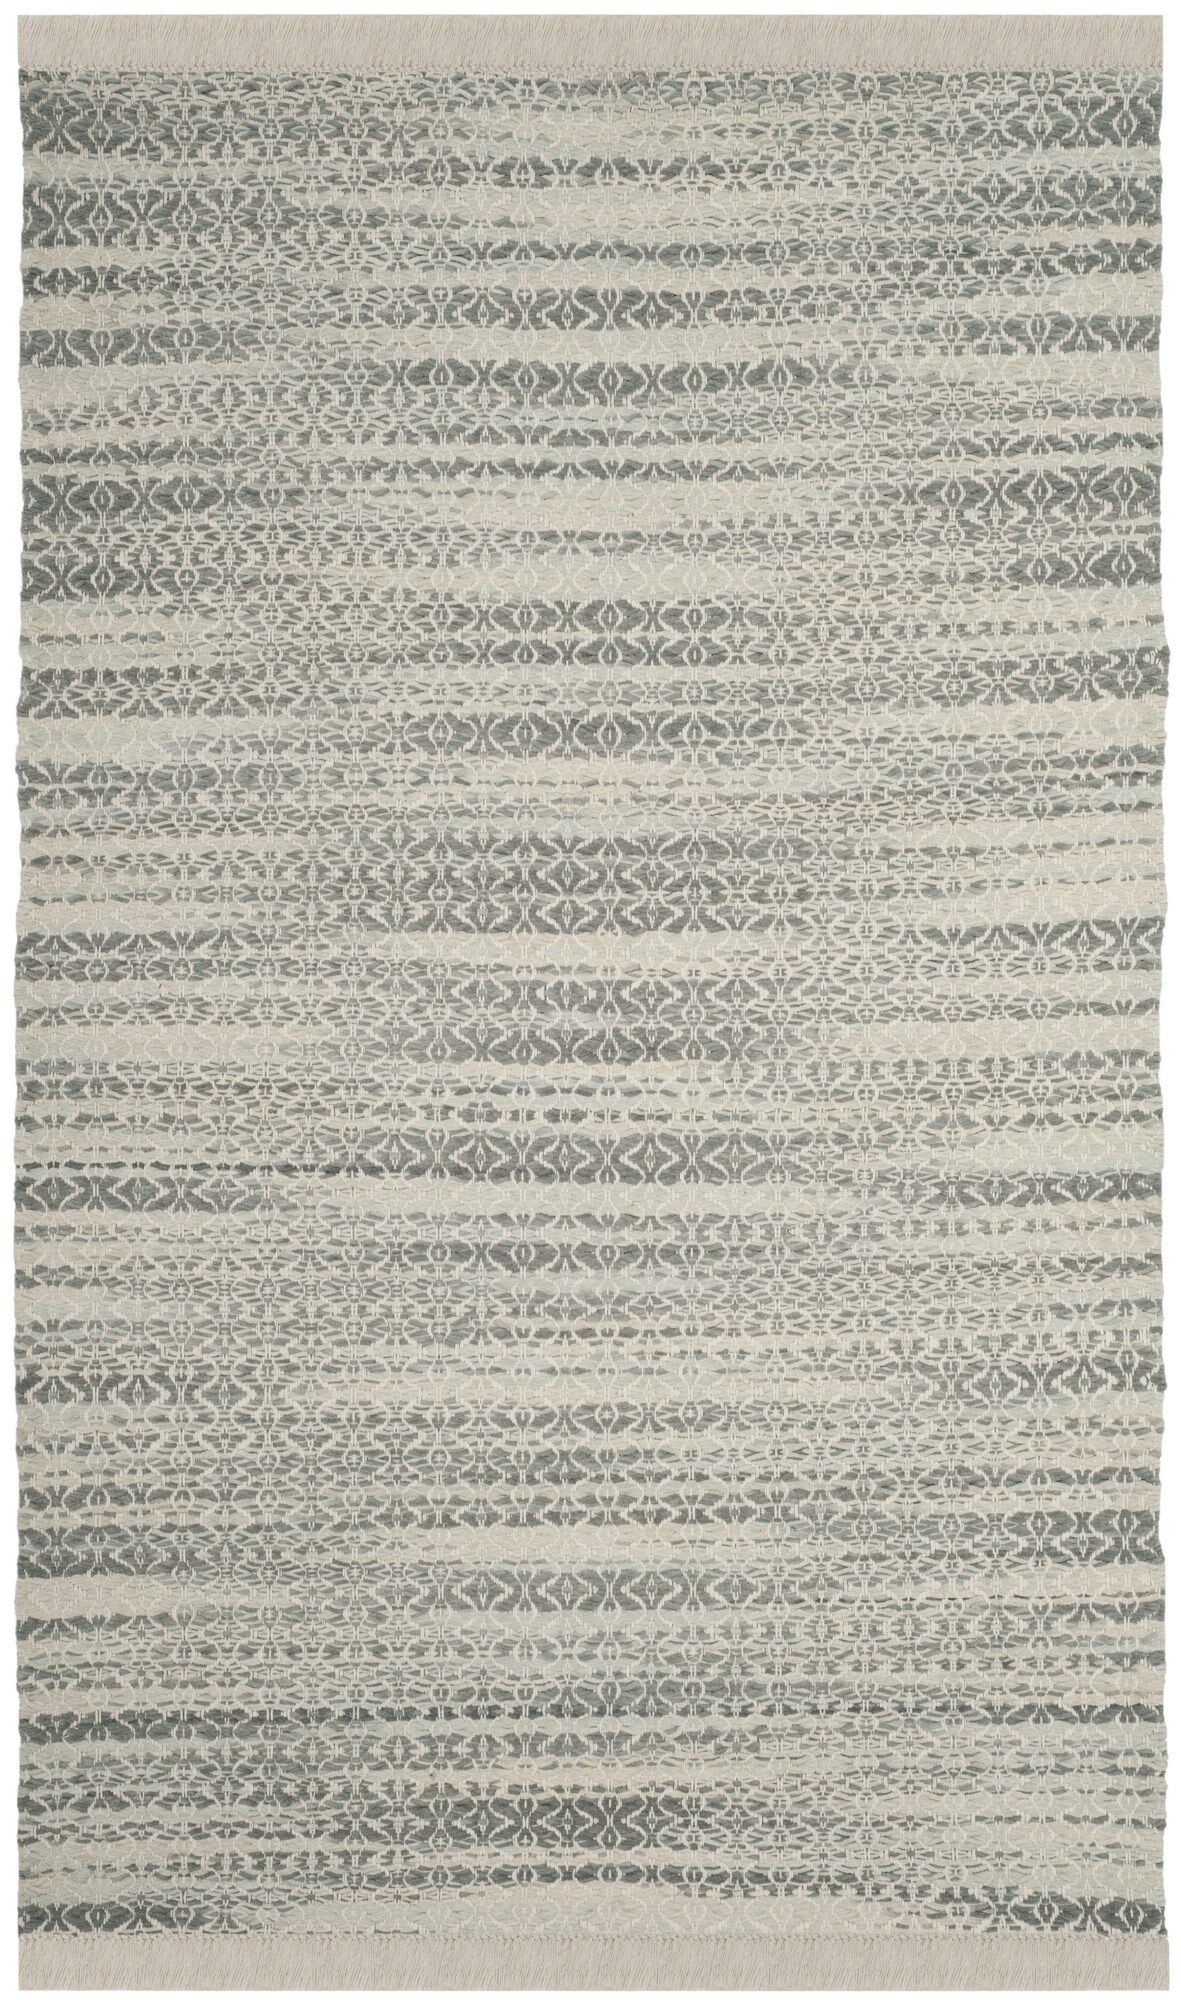 Redbrook  Hand-Tufted Gray/Ivory Area Rug Rug Size: Rectangle 3' x 5'